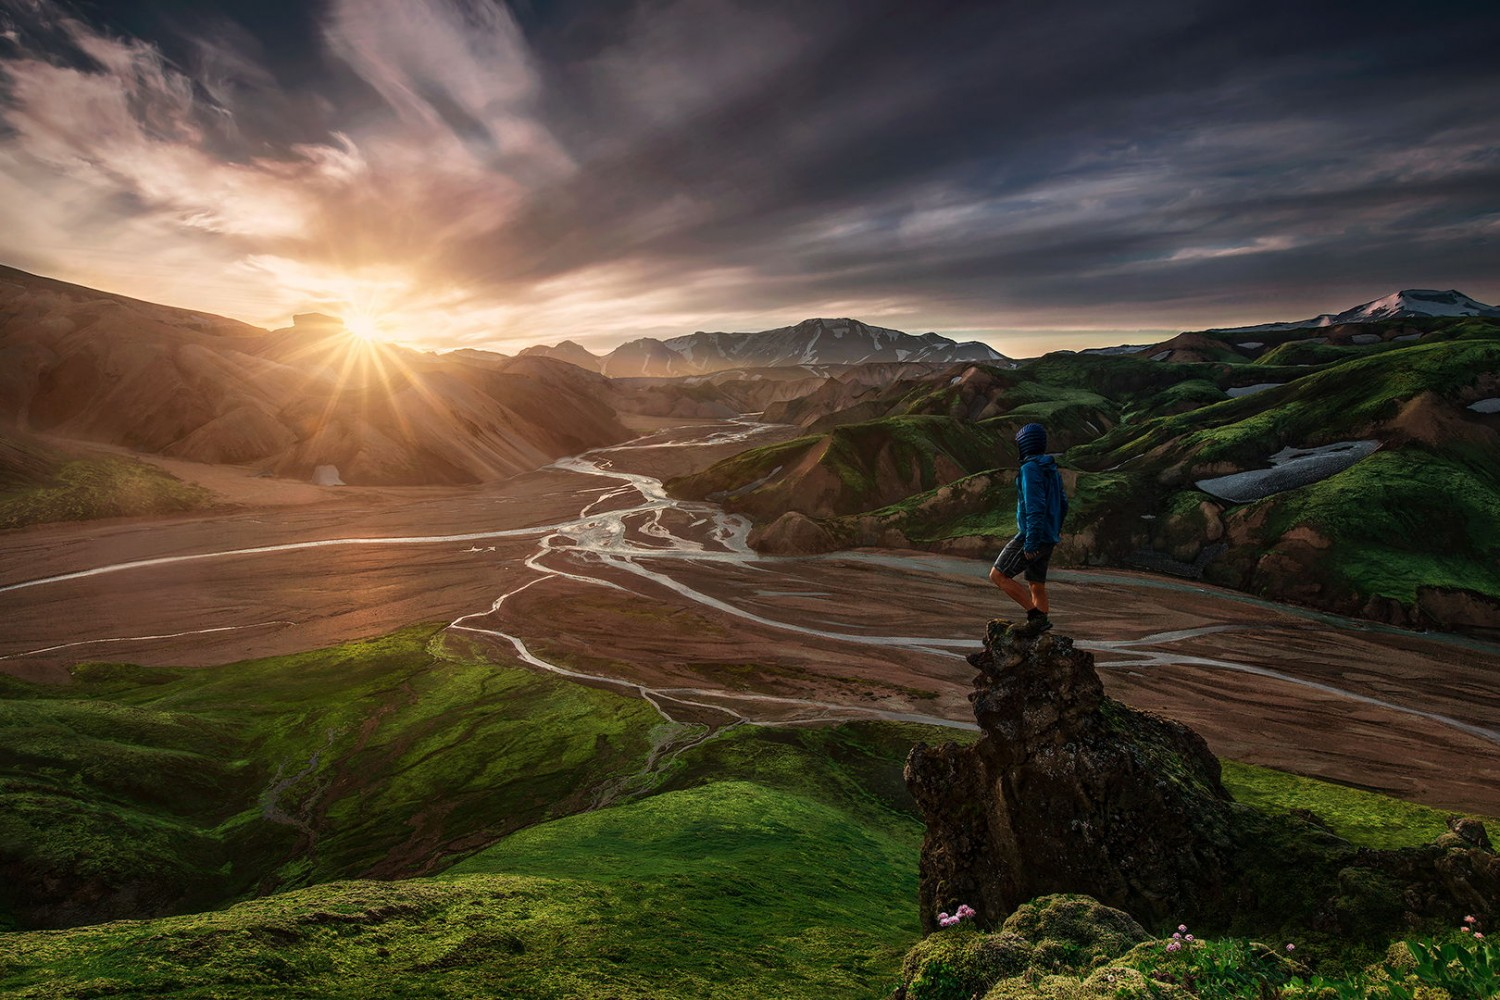 45 Scenic Self-Portraits That Will Take You Places